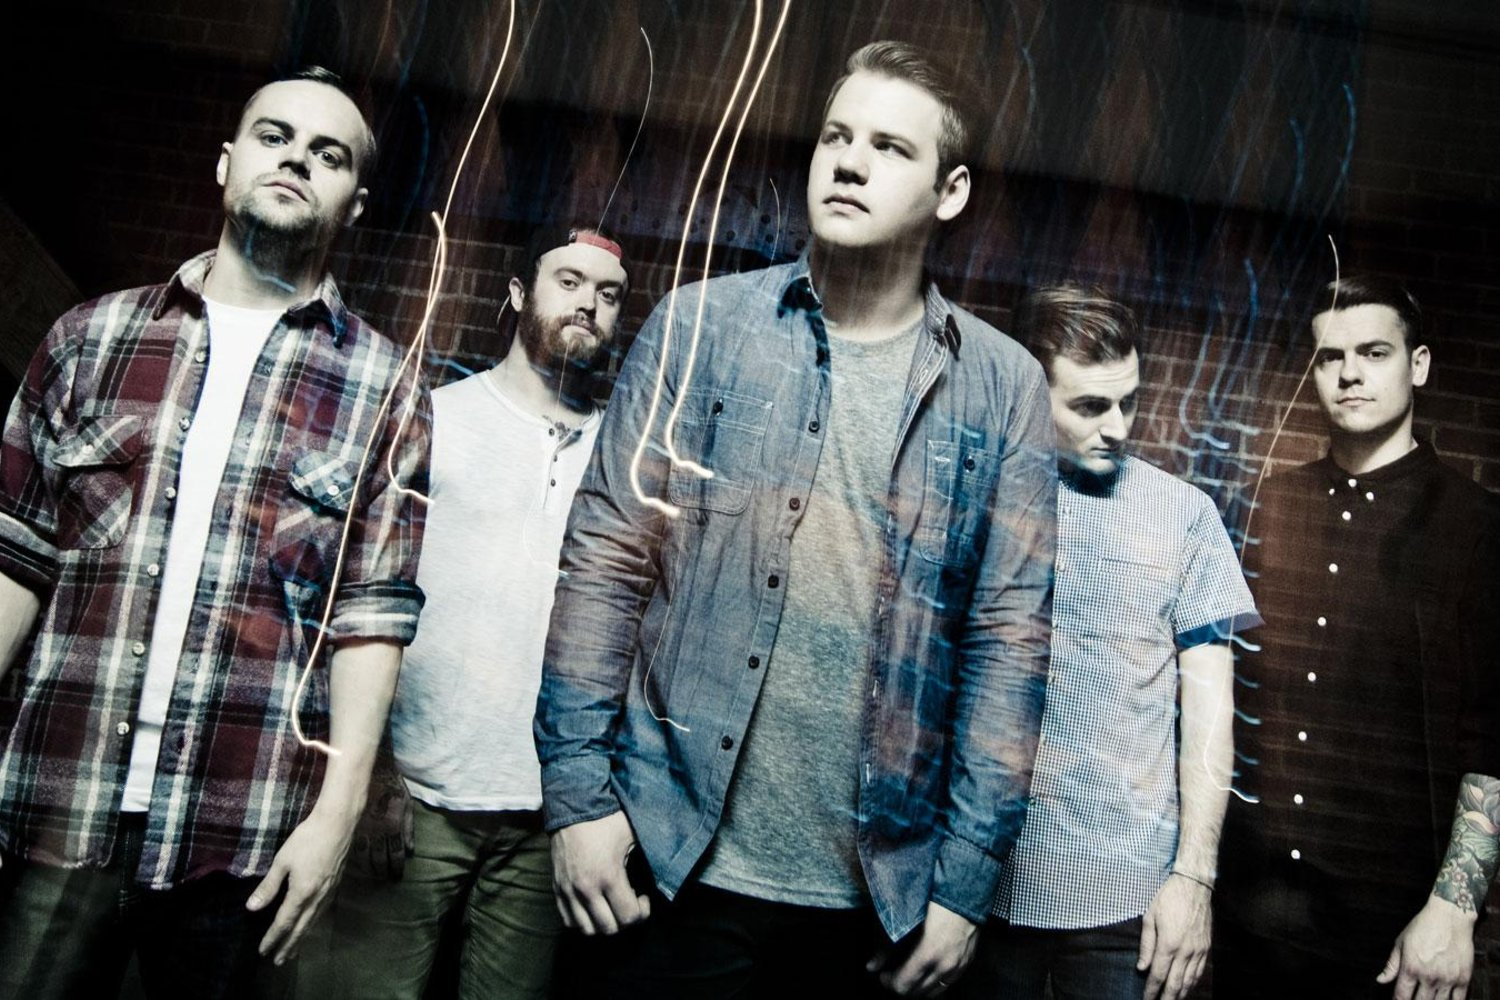 red-bull-records-very-own-hard-rocking-band-beartooth.jpg